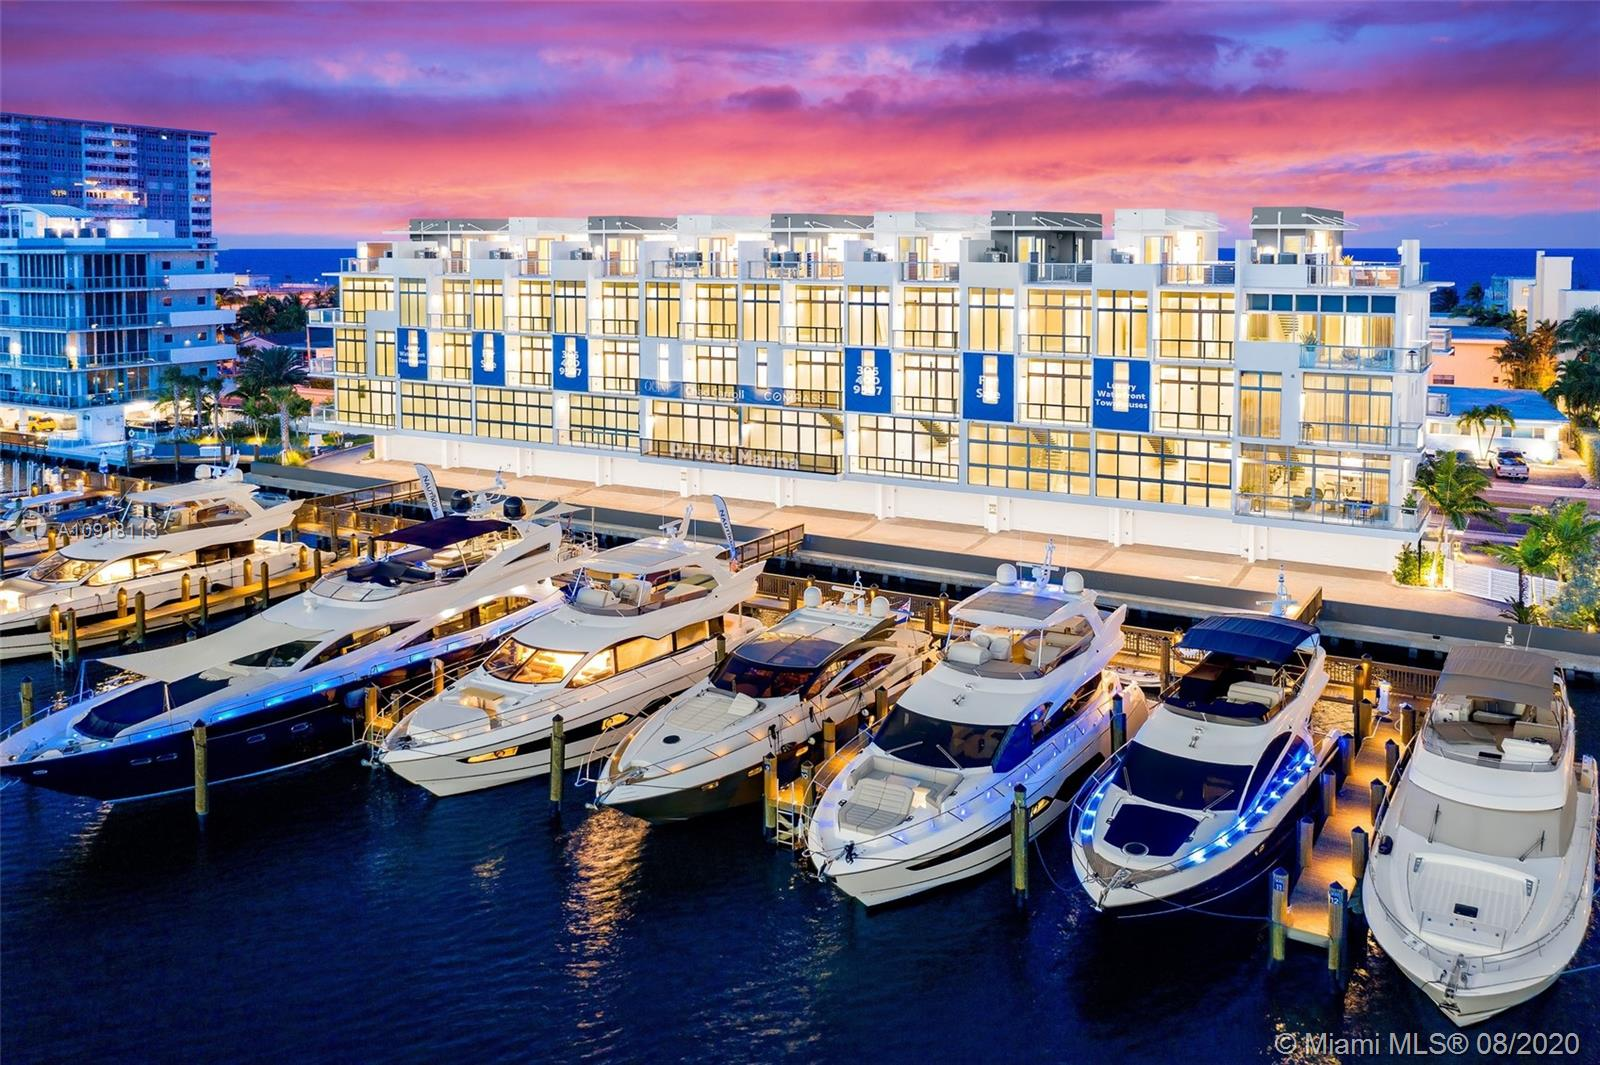 Introducing Quint Collection Hollywood, 10 luxury townhouses with a private marina. Unobstructed views of the Intracoastal & Atlantic Ocean. Nestled between the best of Miami Beach & Ft Lauderdale, offers the perfect blend of convenience & sophisticated minimalism merged with the ultimate luxury waterfront lifestyle. Custom finishes include Italkraft, Gaggenau appliances, porcelain floors, glass elevator. 5 story residences w/ a sky deck featuring summer kitchen, jacuzzi & entertainment area. Floor plans from 3,100-3,500 SQ FT, 3 bedrooms & 3.5 bathrooms. Residents only marina includes 12 slips between 55-80 FT w/ permitting ready to install lift. 2 car private garage. Walking distance to the best restaurants in Hollywood. Ocean access via ft Lauderdale's Port Everglades just 3 miles north